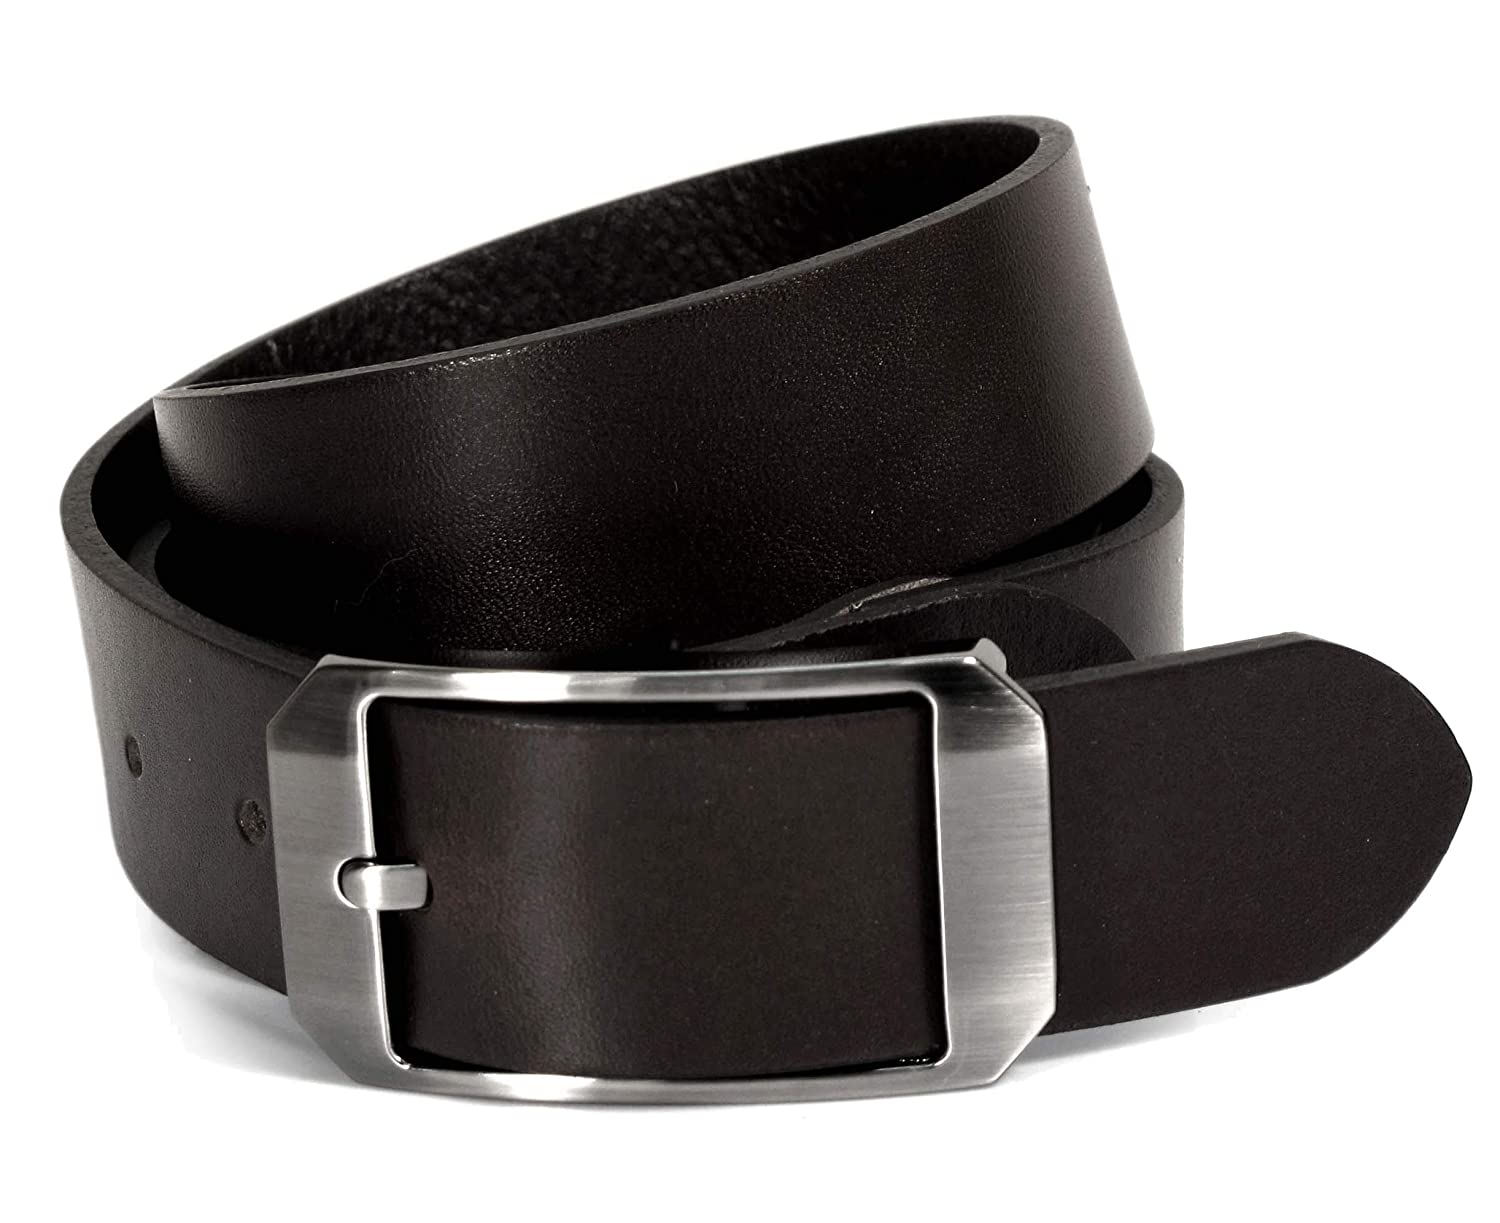 CU1 Mens Real Genuine Leather Belt Black Brown White 1.25 Wide S-L Casual Jeans